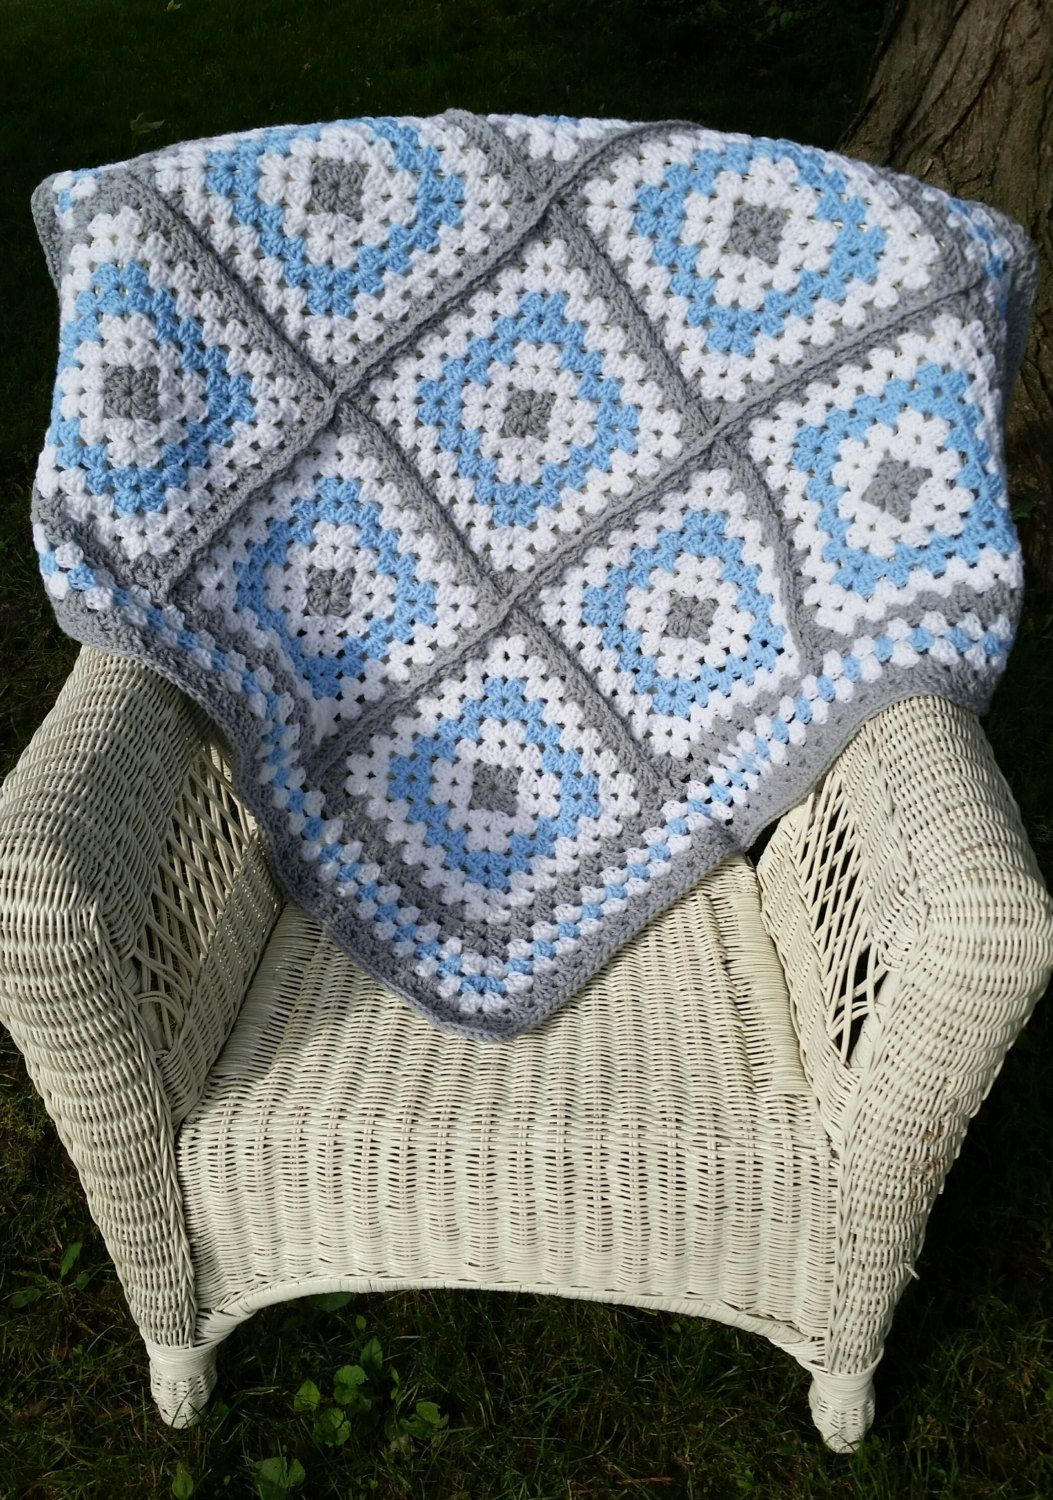 Blue and Grey Granny Square Baby Blanket, Crochet Baby Blanket, Baby ...